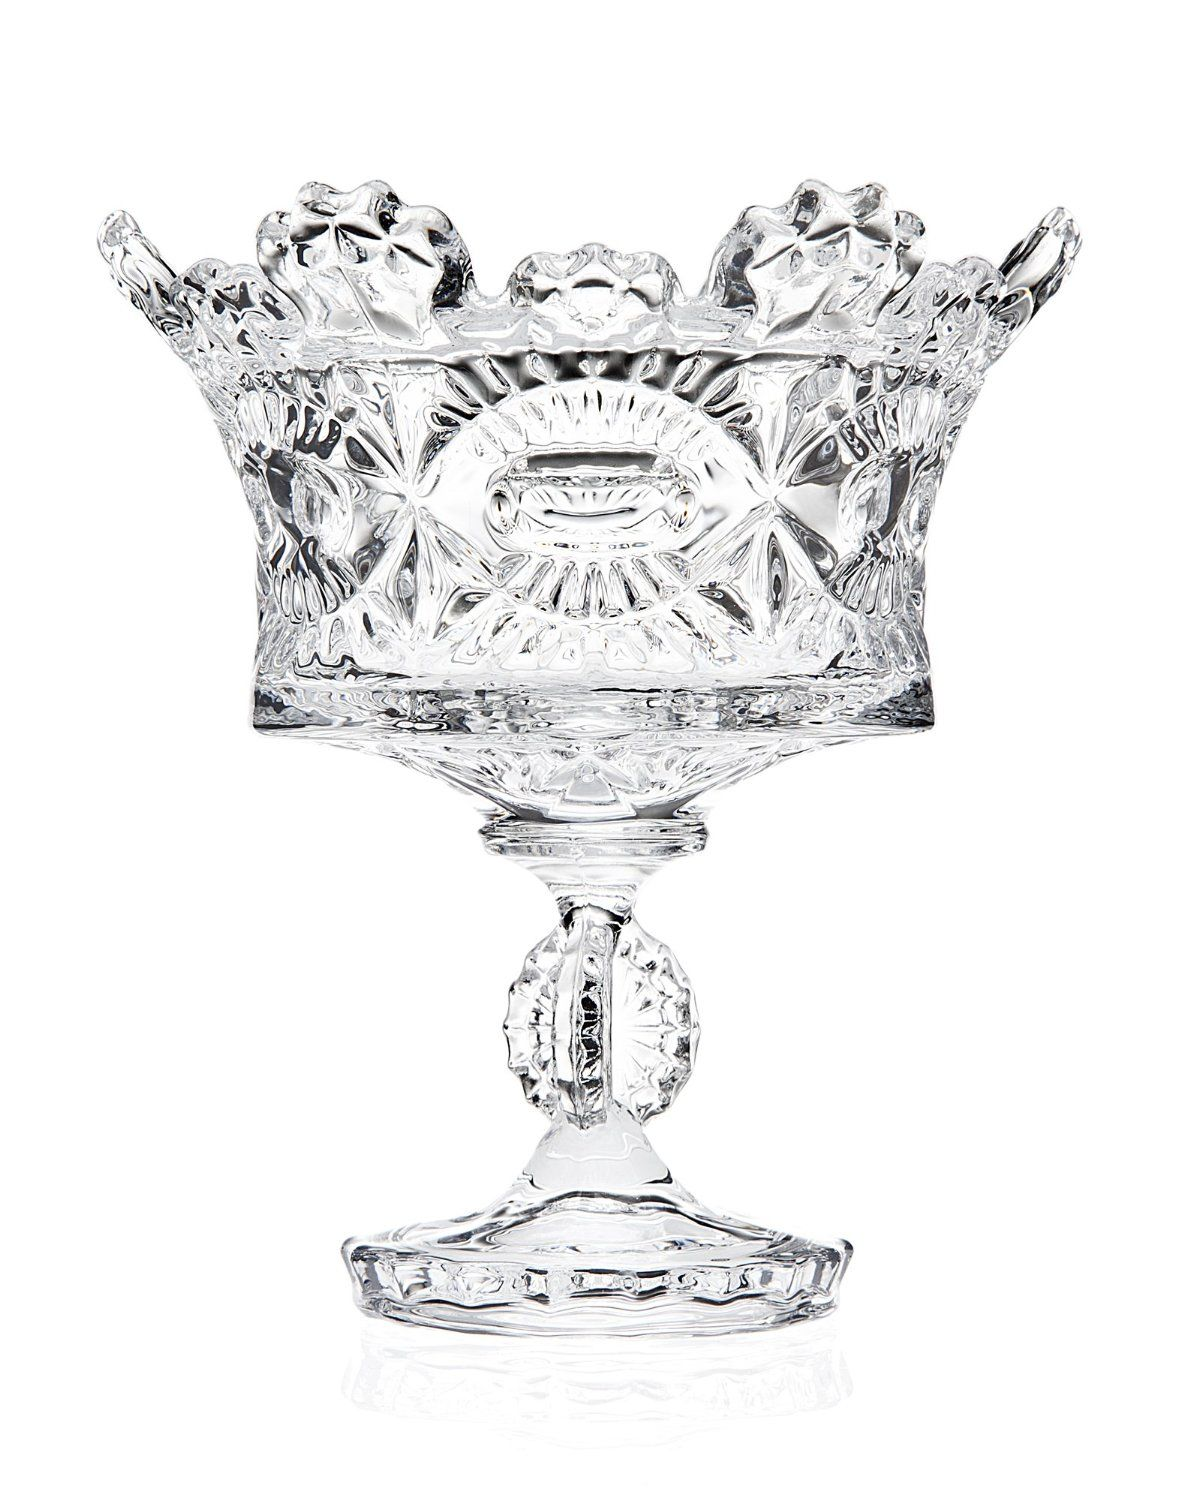 Amazon.com | Godinger Royalty Footed Candy Dish, 5.10Lx5.10Wx5.63H (1, A): Crystal Bowl: Candy Dishes